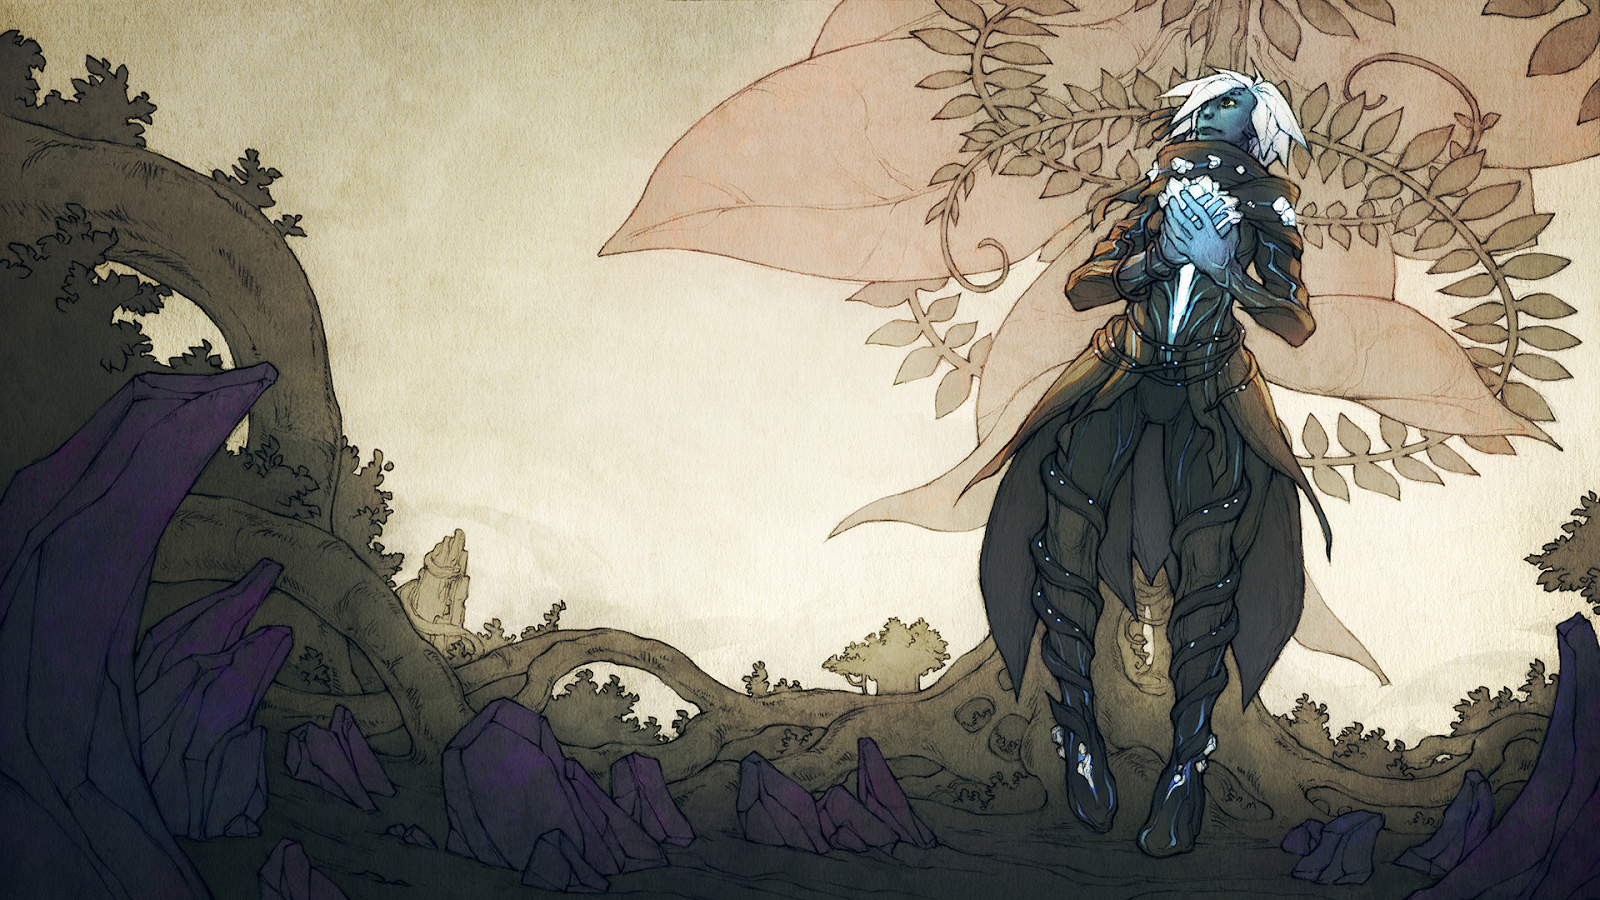 Inventory Full: Not The End: Guild Wars 2